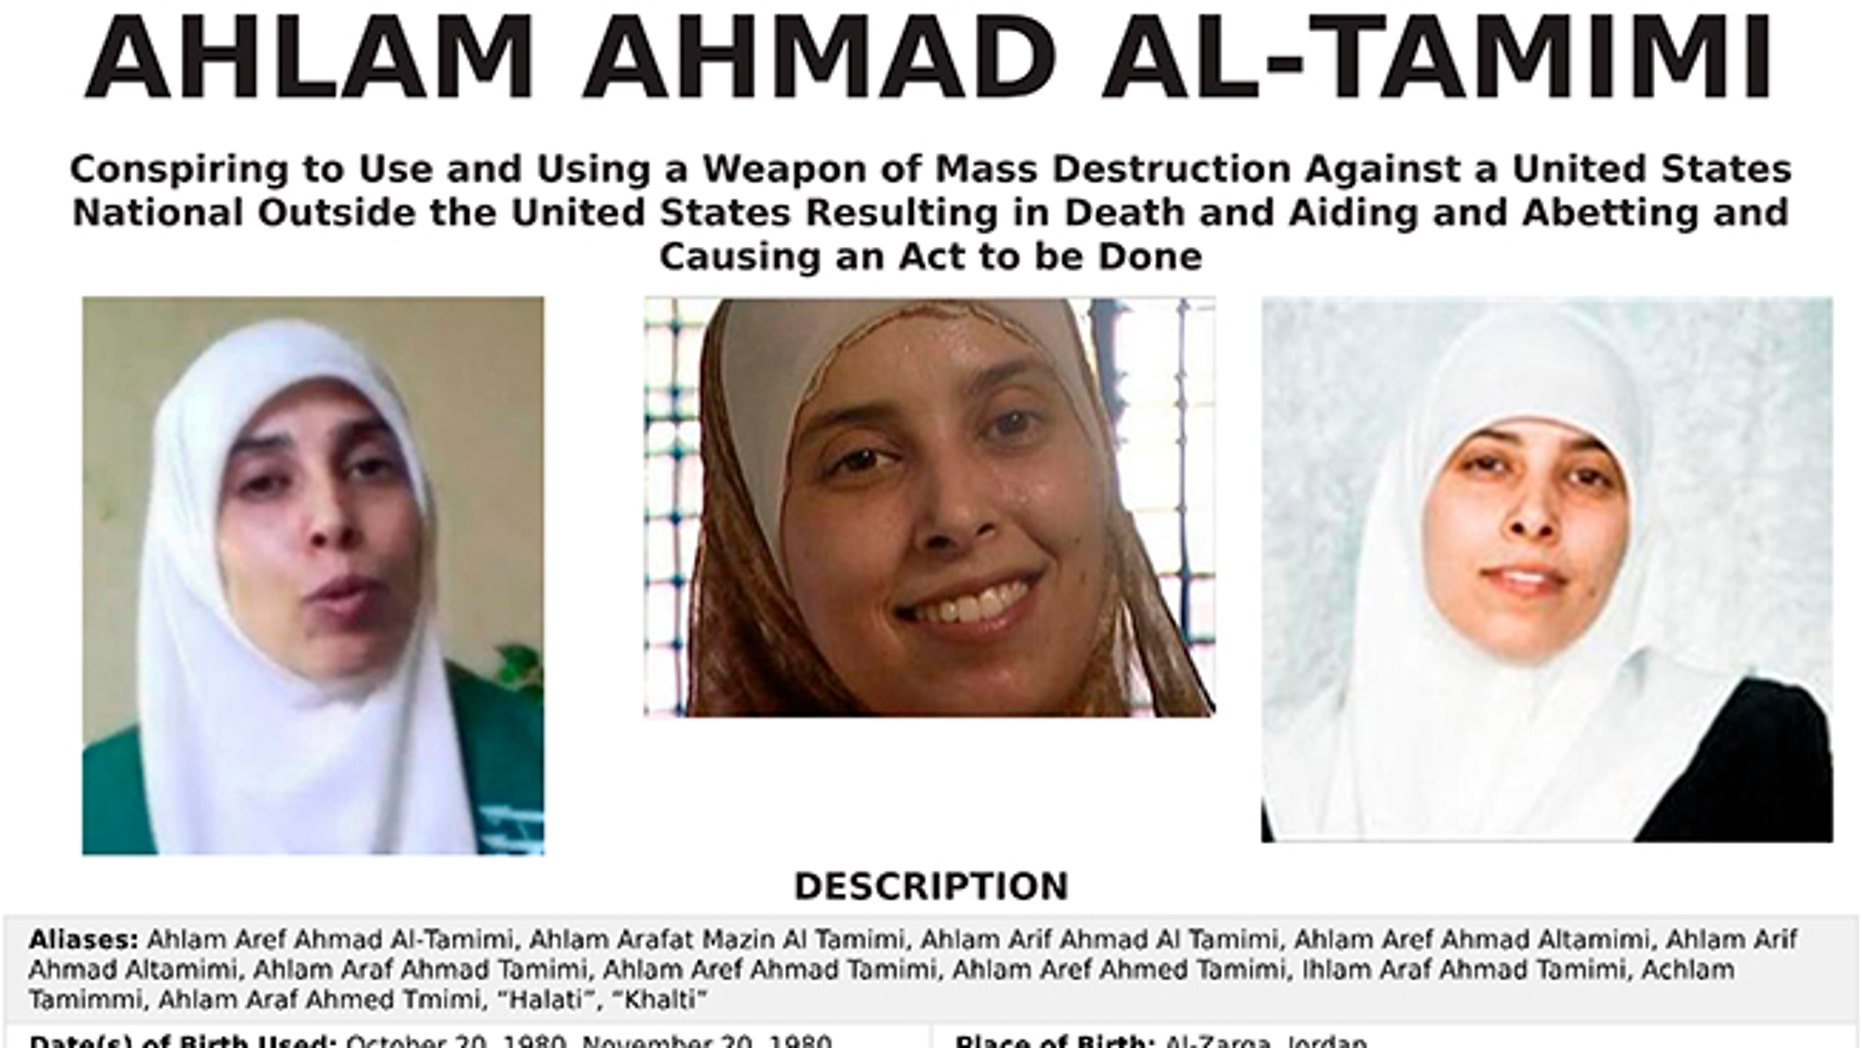 The FBI's most wanted poster for Ahlam Aref Ahmad Al-Tamimi, a Jordanian woman charged in connection with a 2001 bombing of a Jerusalem pizza restaurant that killed 15 people and injured dozens of others.